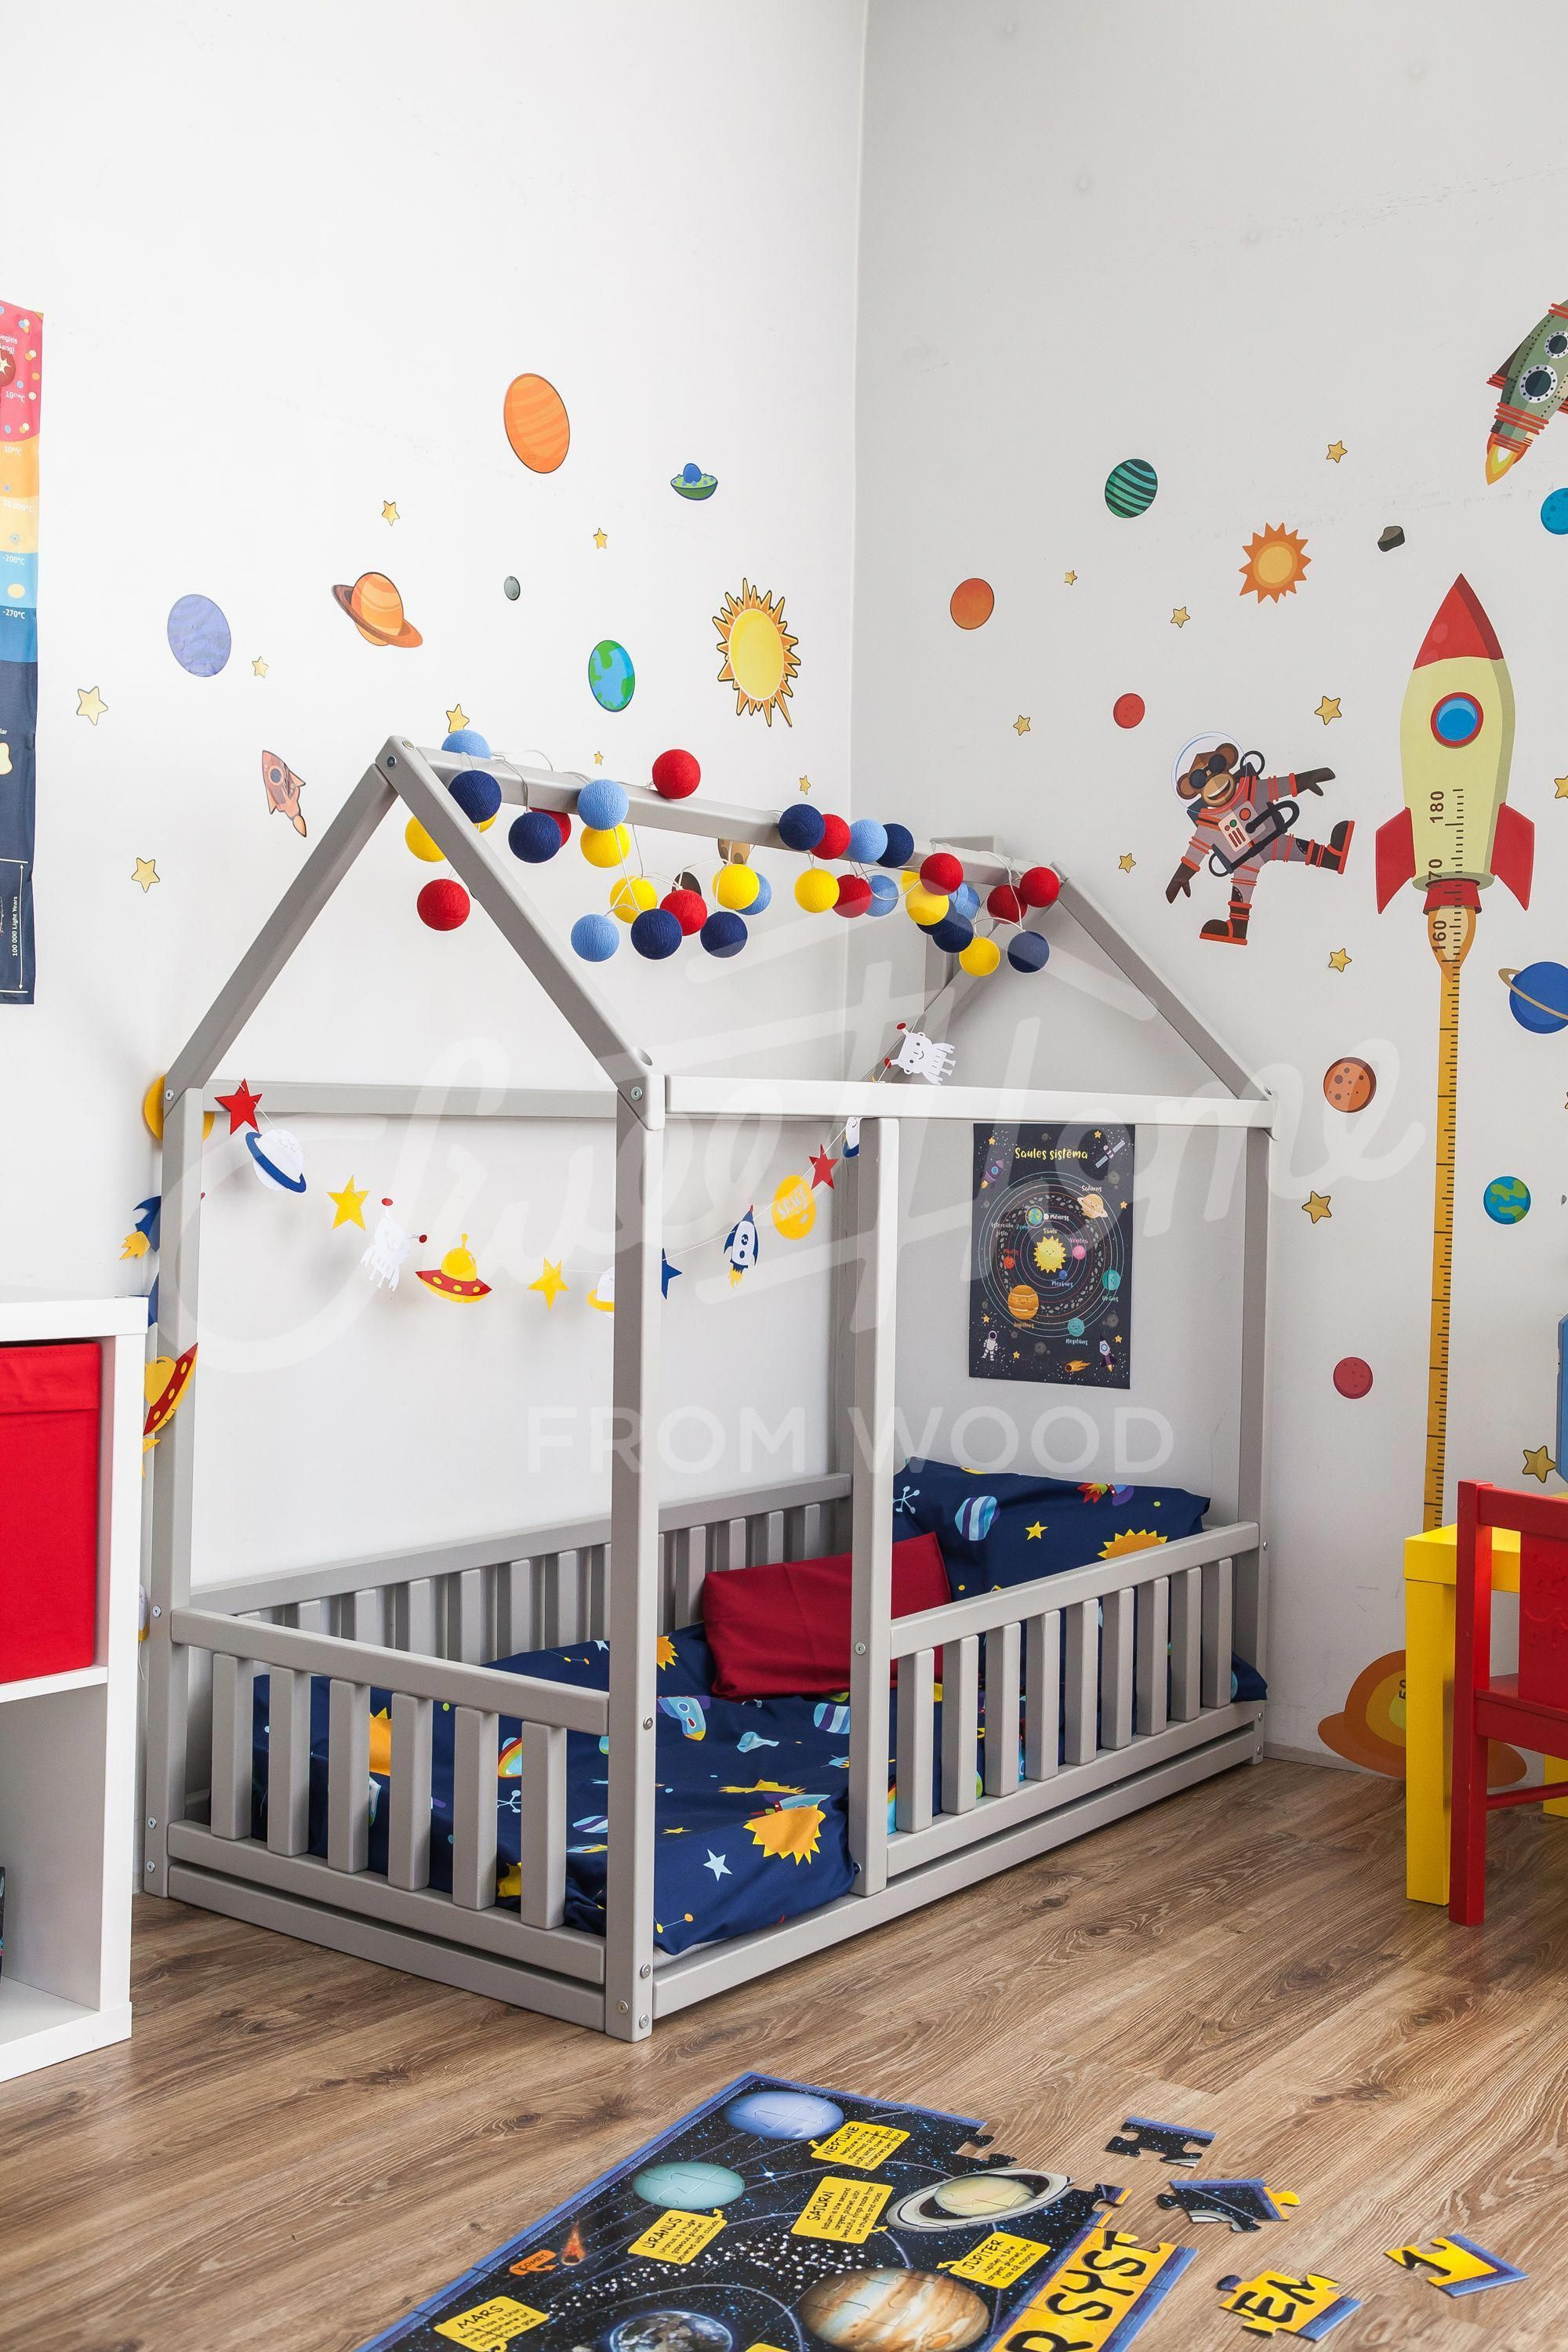 Universe Theme Boys Room Ideas, Space Theme Kids Room Ideas, Frame Bed  Children Bed Play Tent House Bed Toddler Bed Floor Bed Baby Room Nursery  Crib Home ...